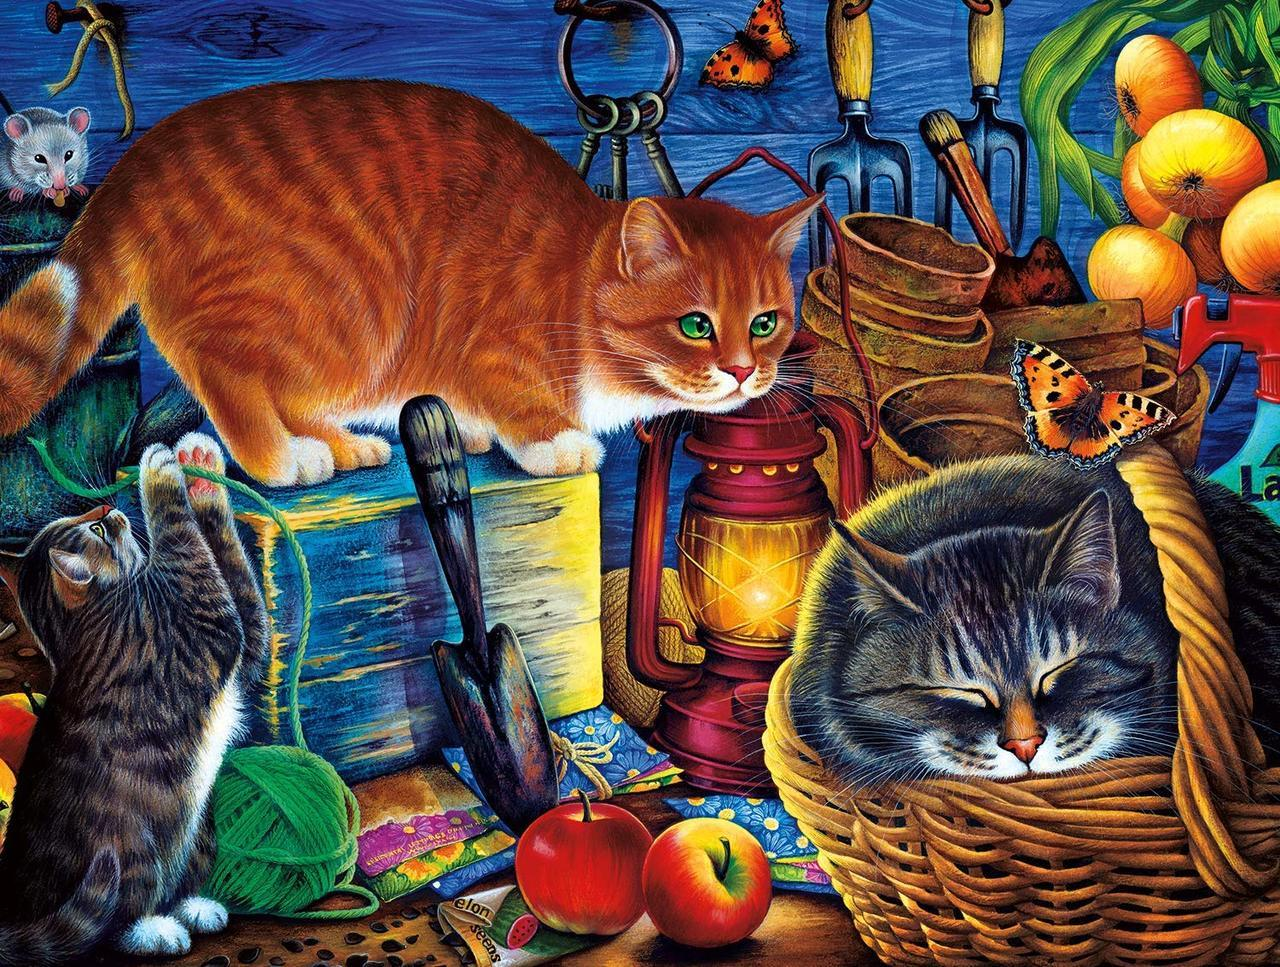 Potting Shed Cats - 750pc Jigsaw Puzzle by Buffalo Games  			  					NEW